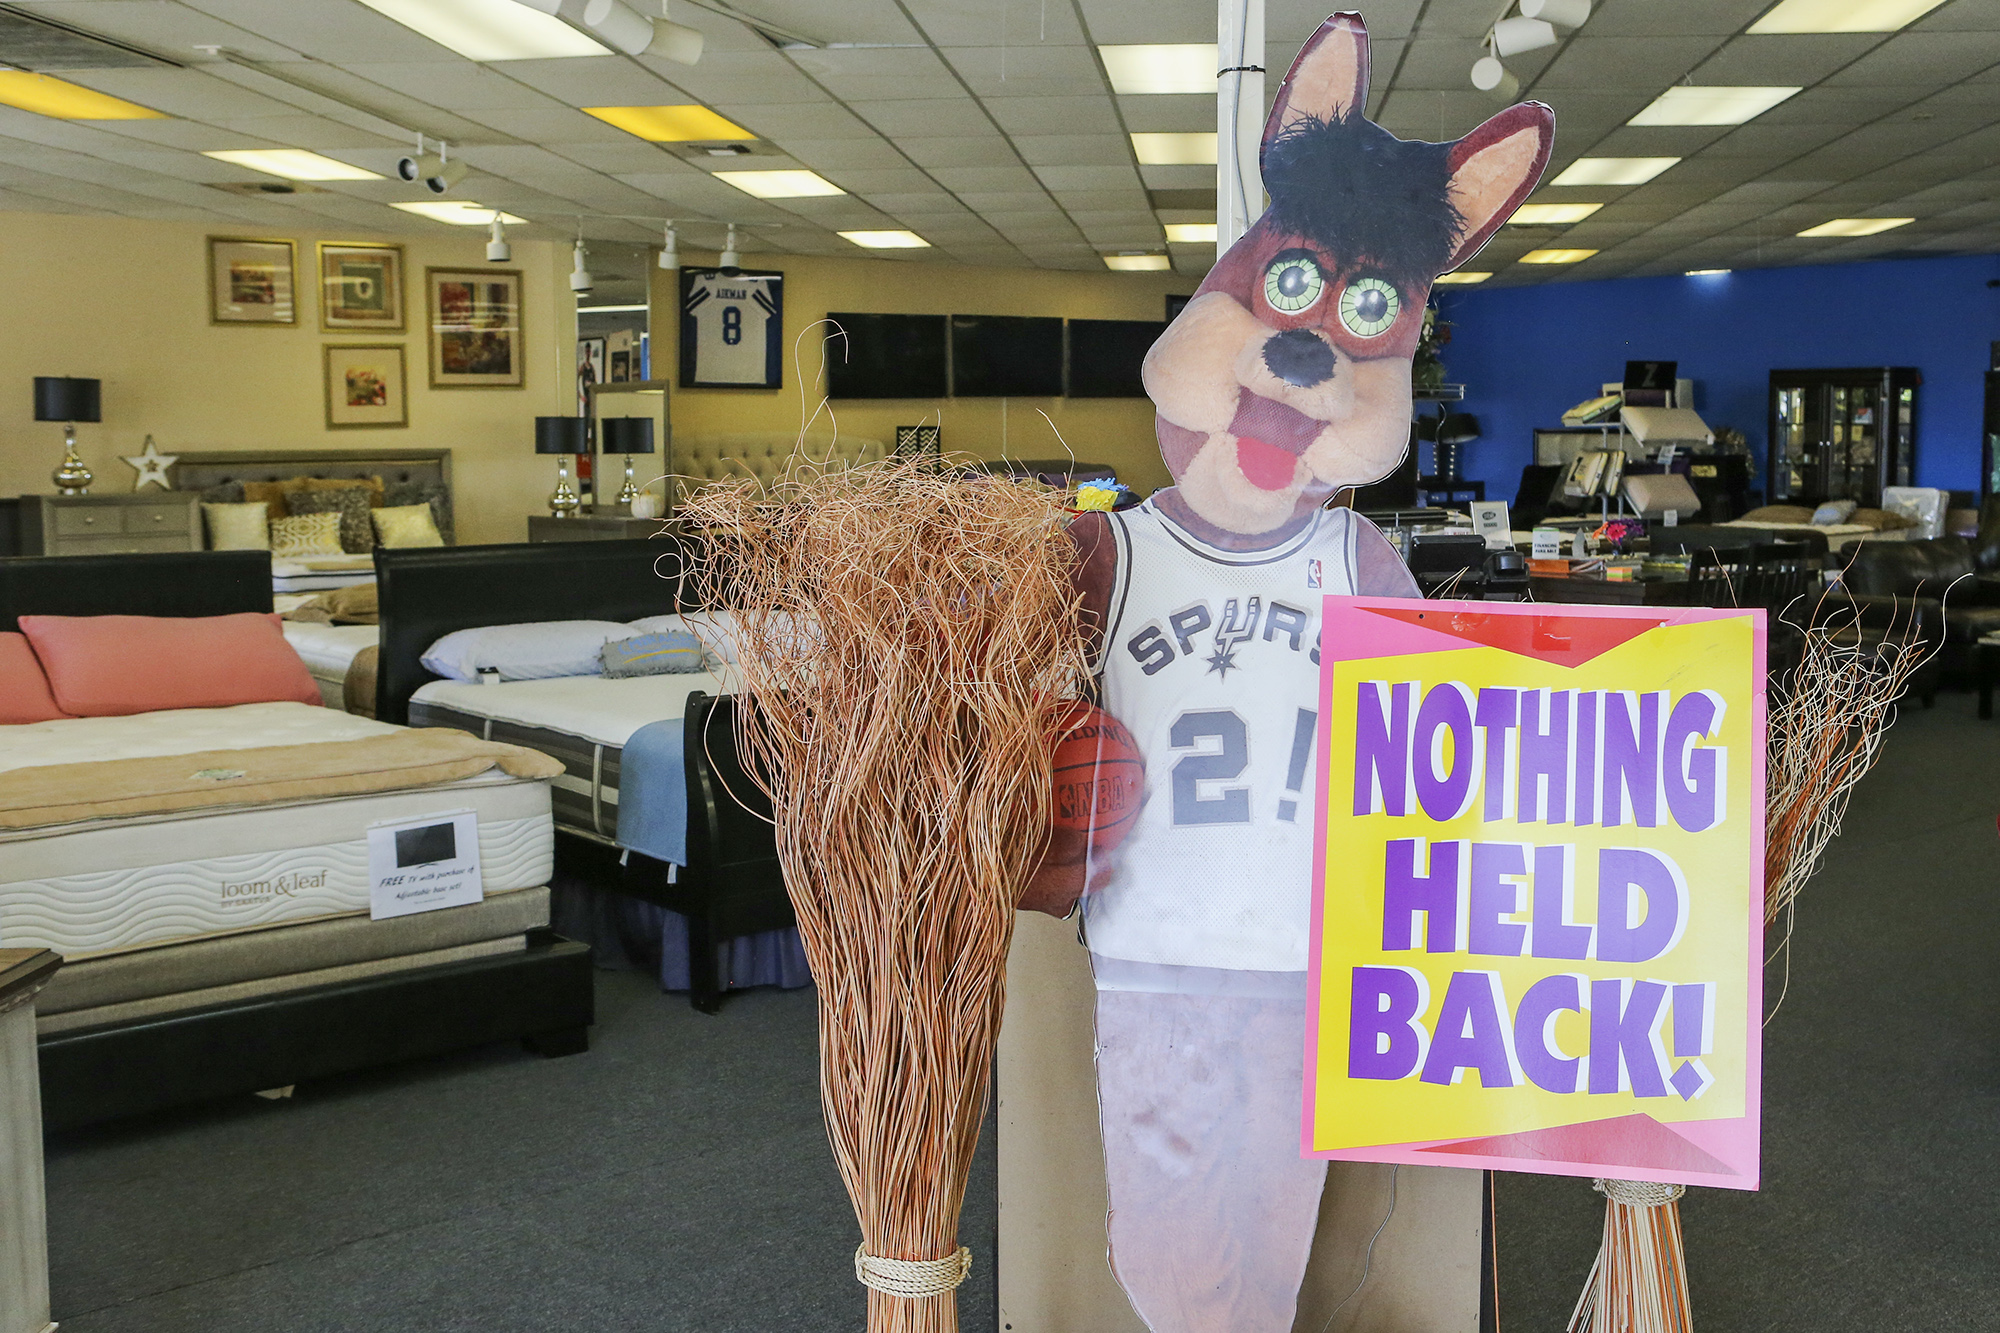 san antonio mattress store closes indefinitely after parodying 9